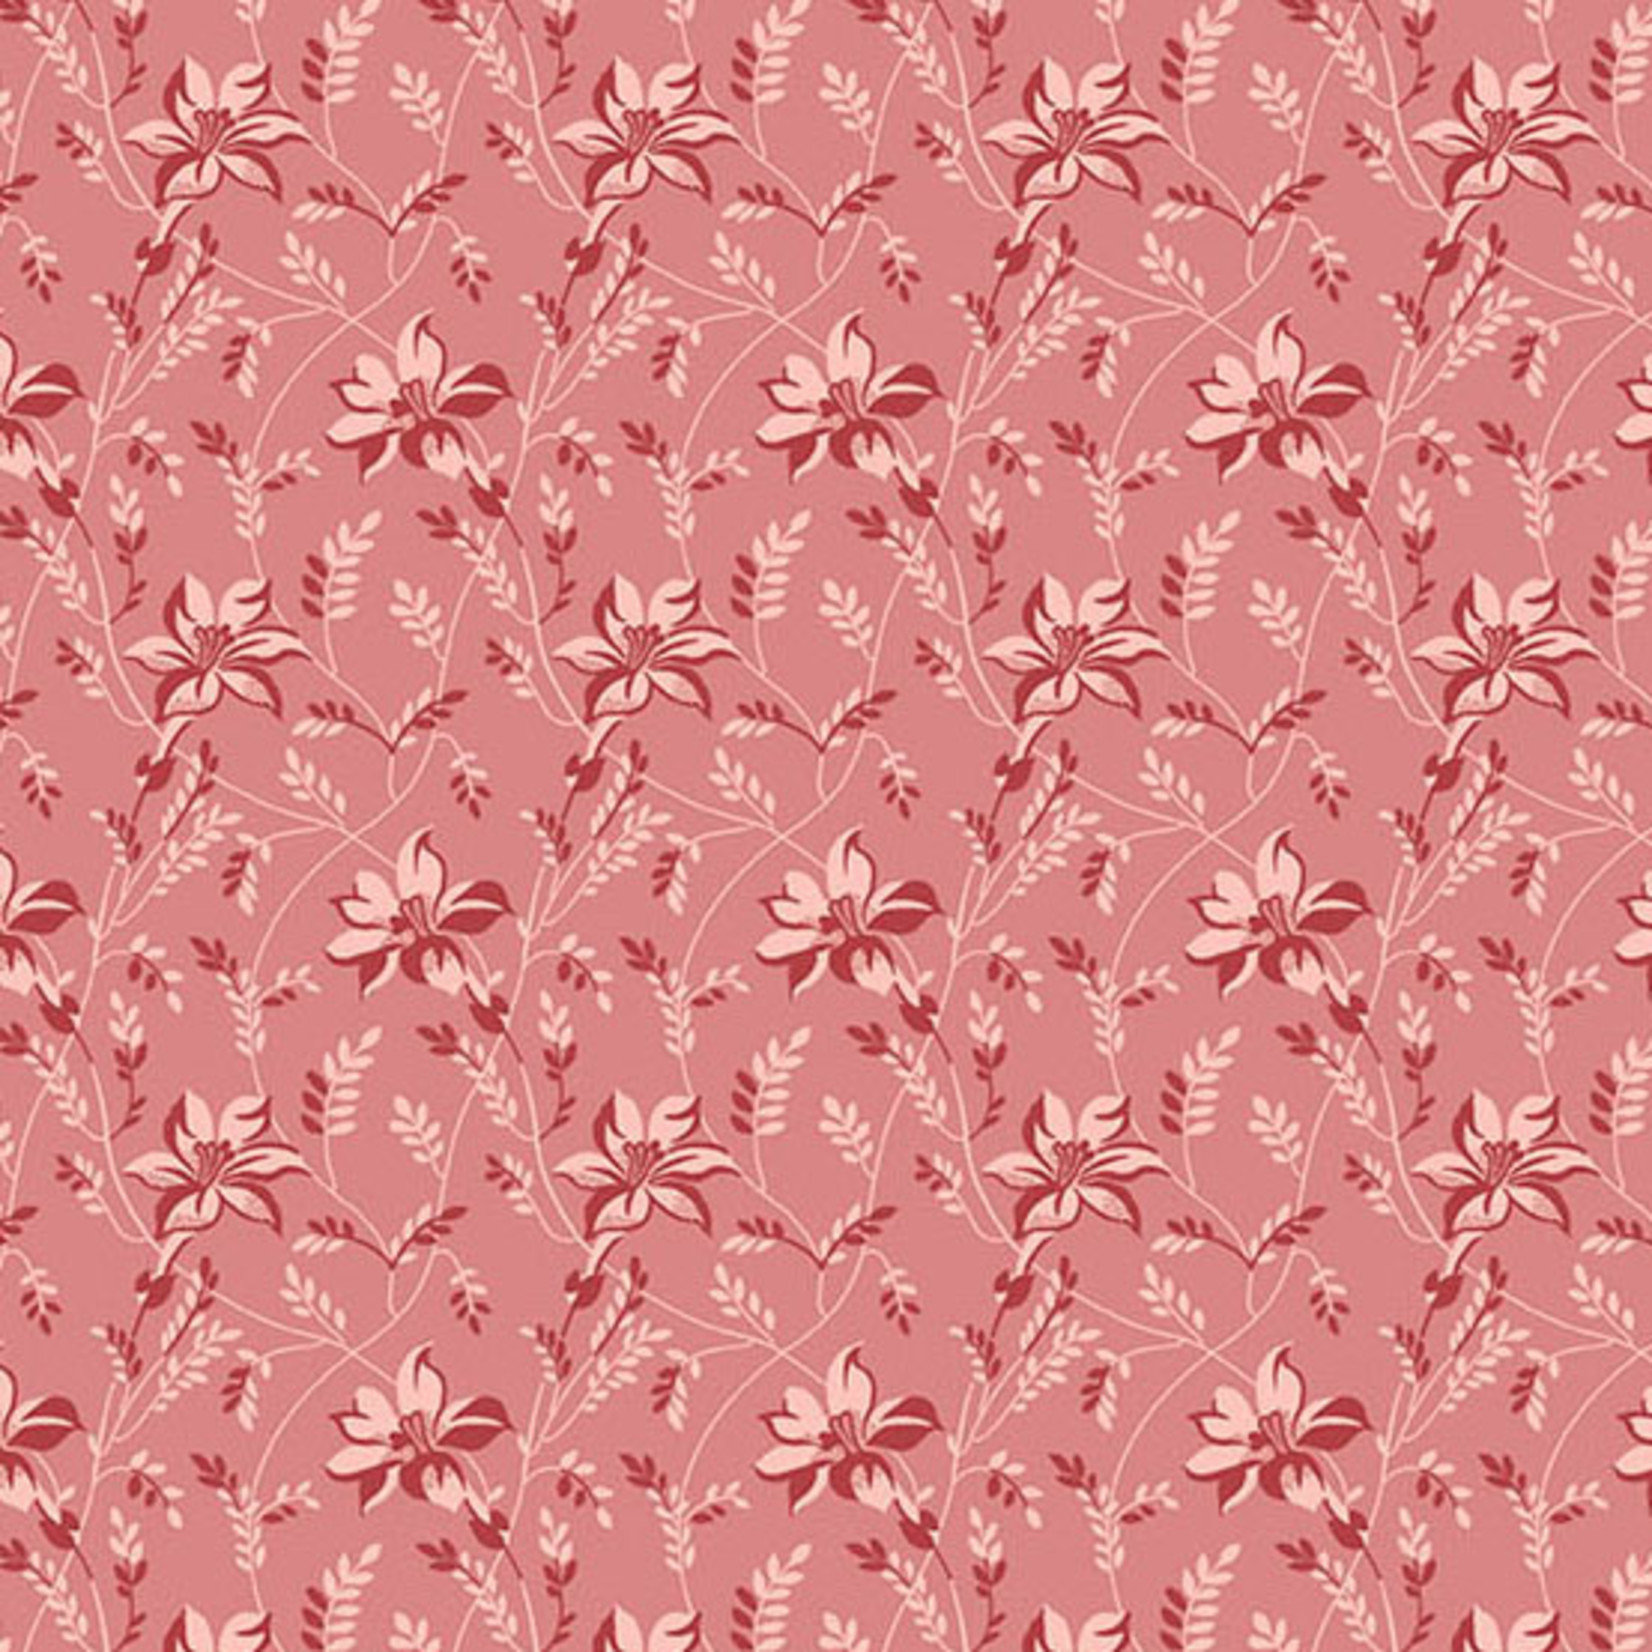 Edyta Sitar Secret Stash - Warms, Buds and Vines, Pink (8753-E1) $0.20 per cm or $20/m